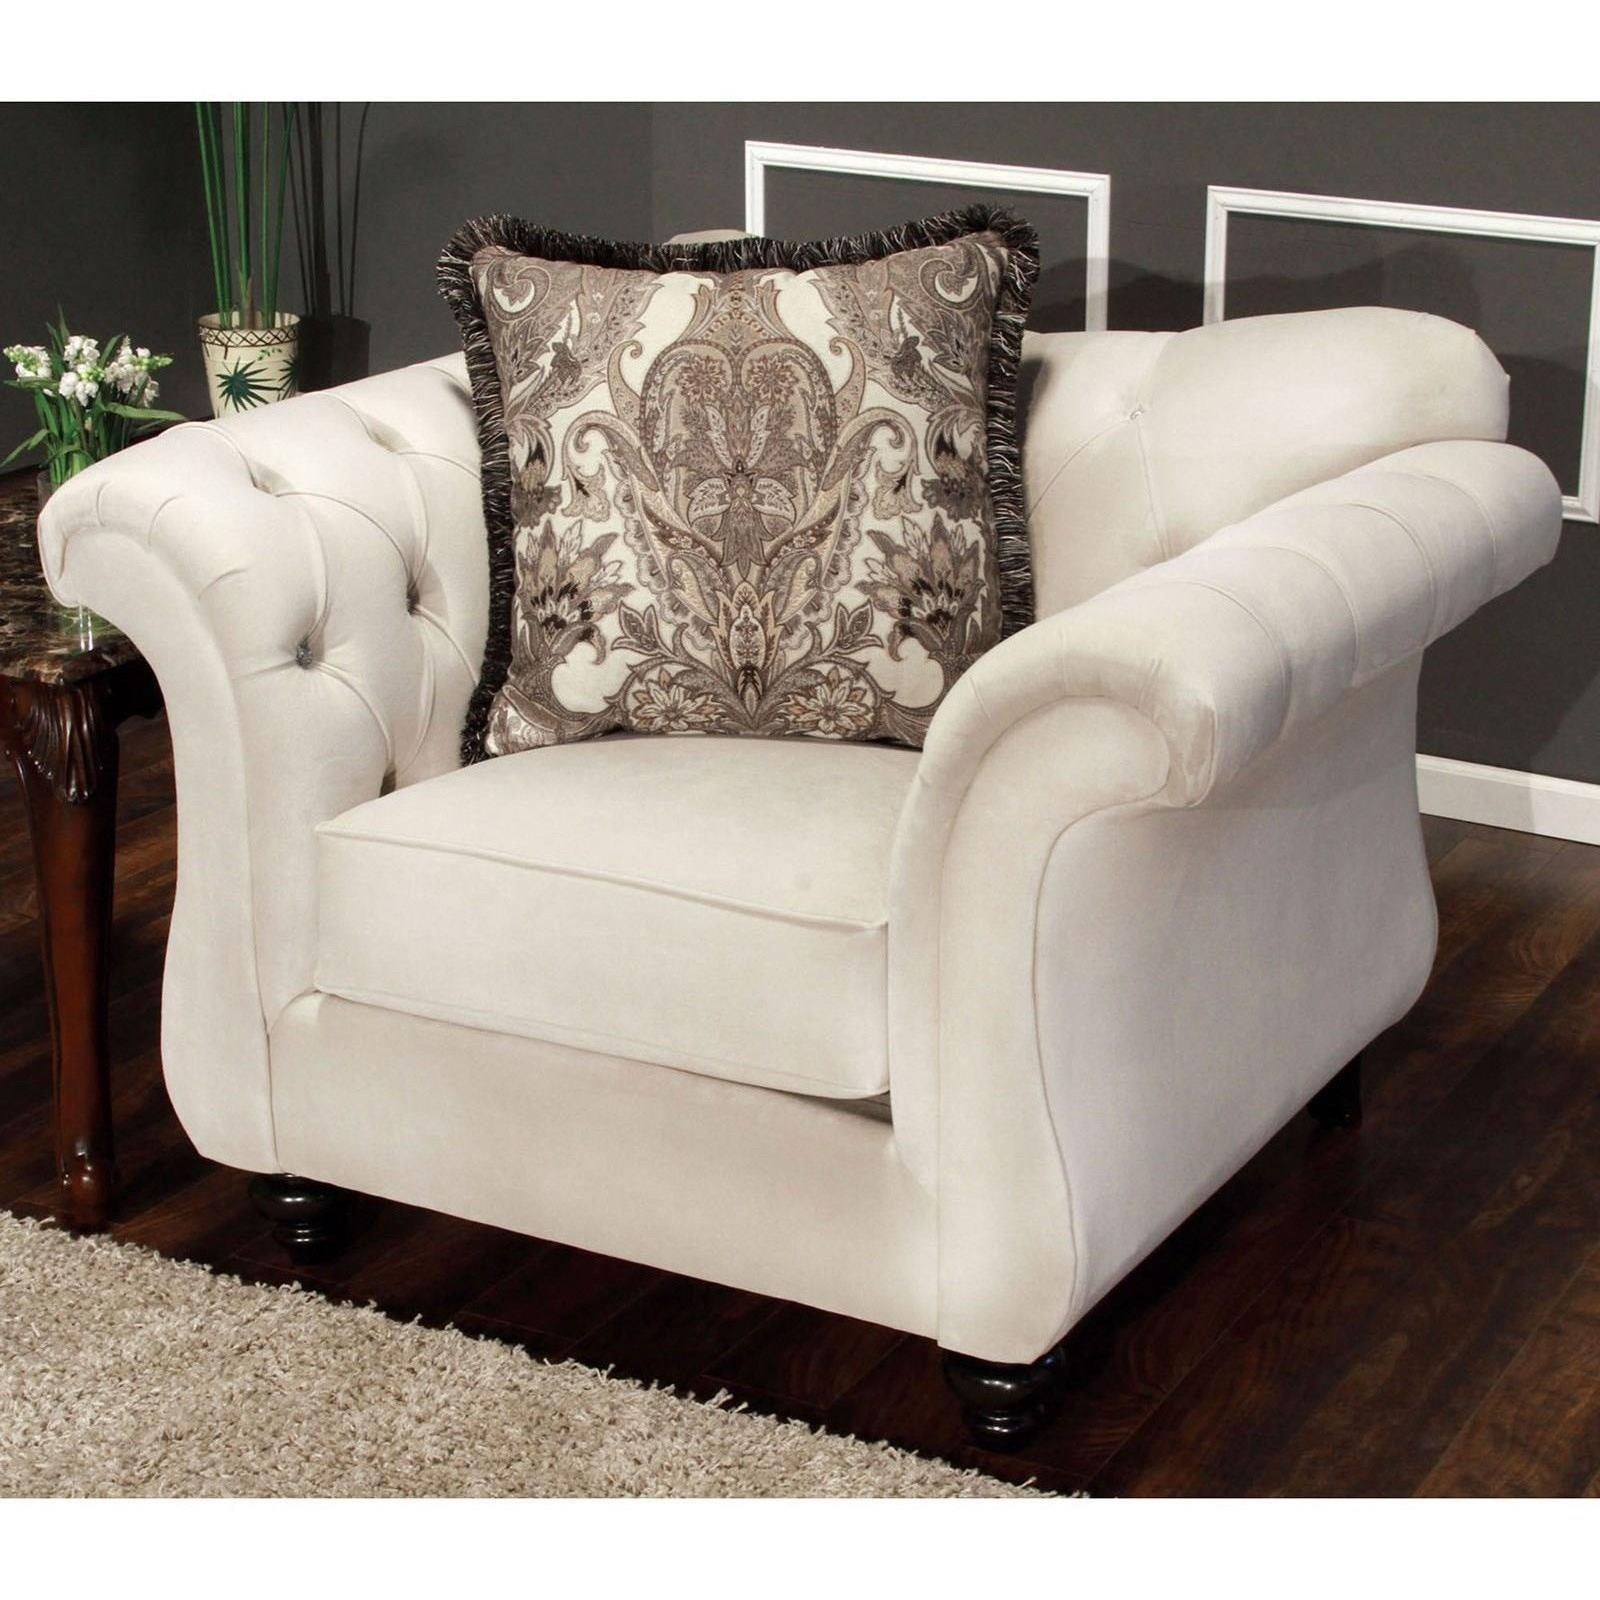 Antoinette Chair at Household Furniture